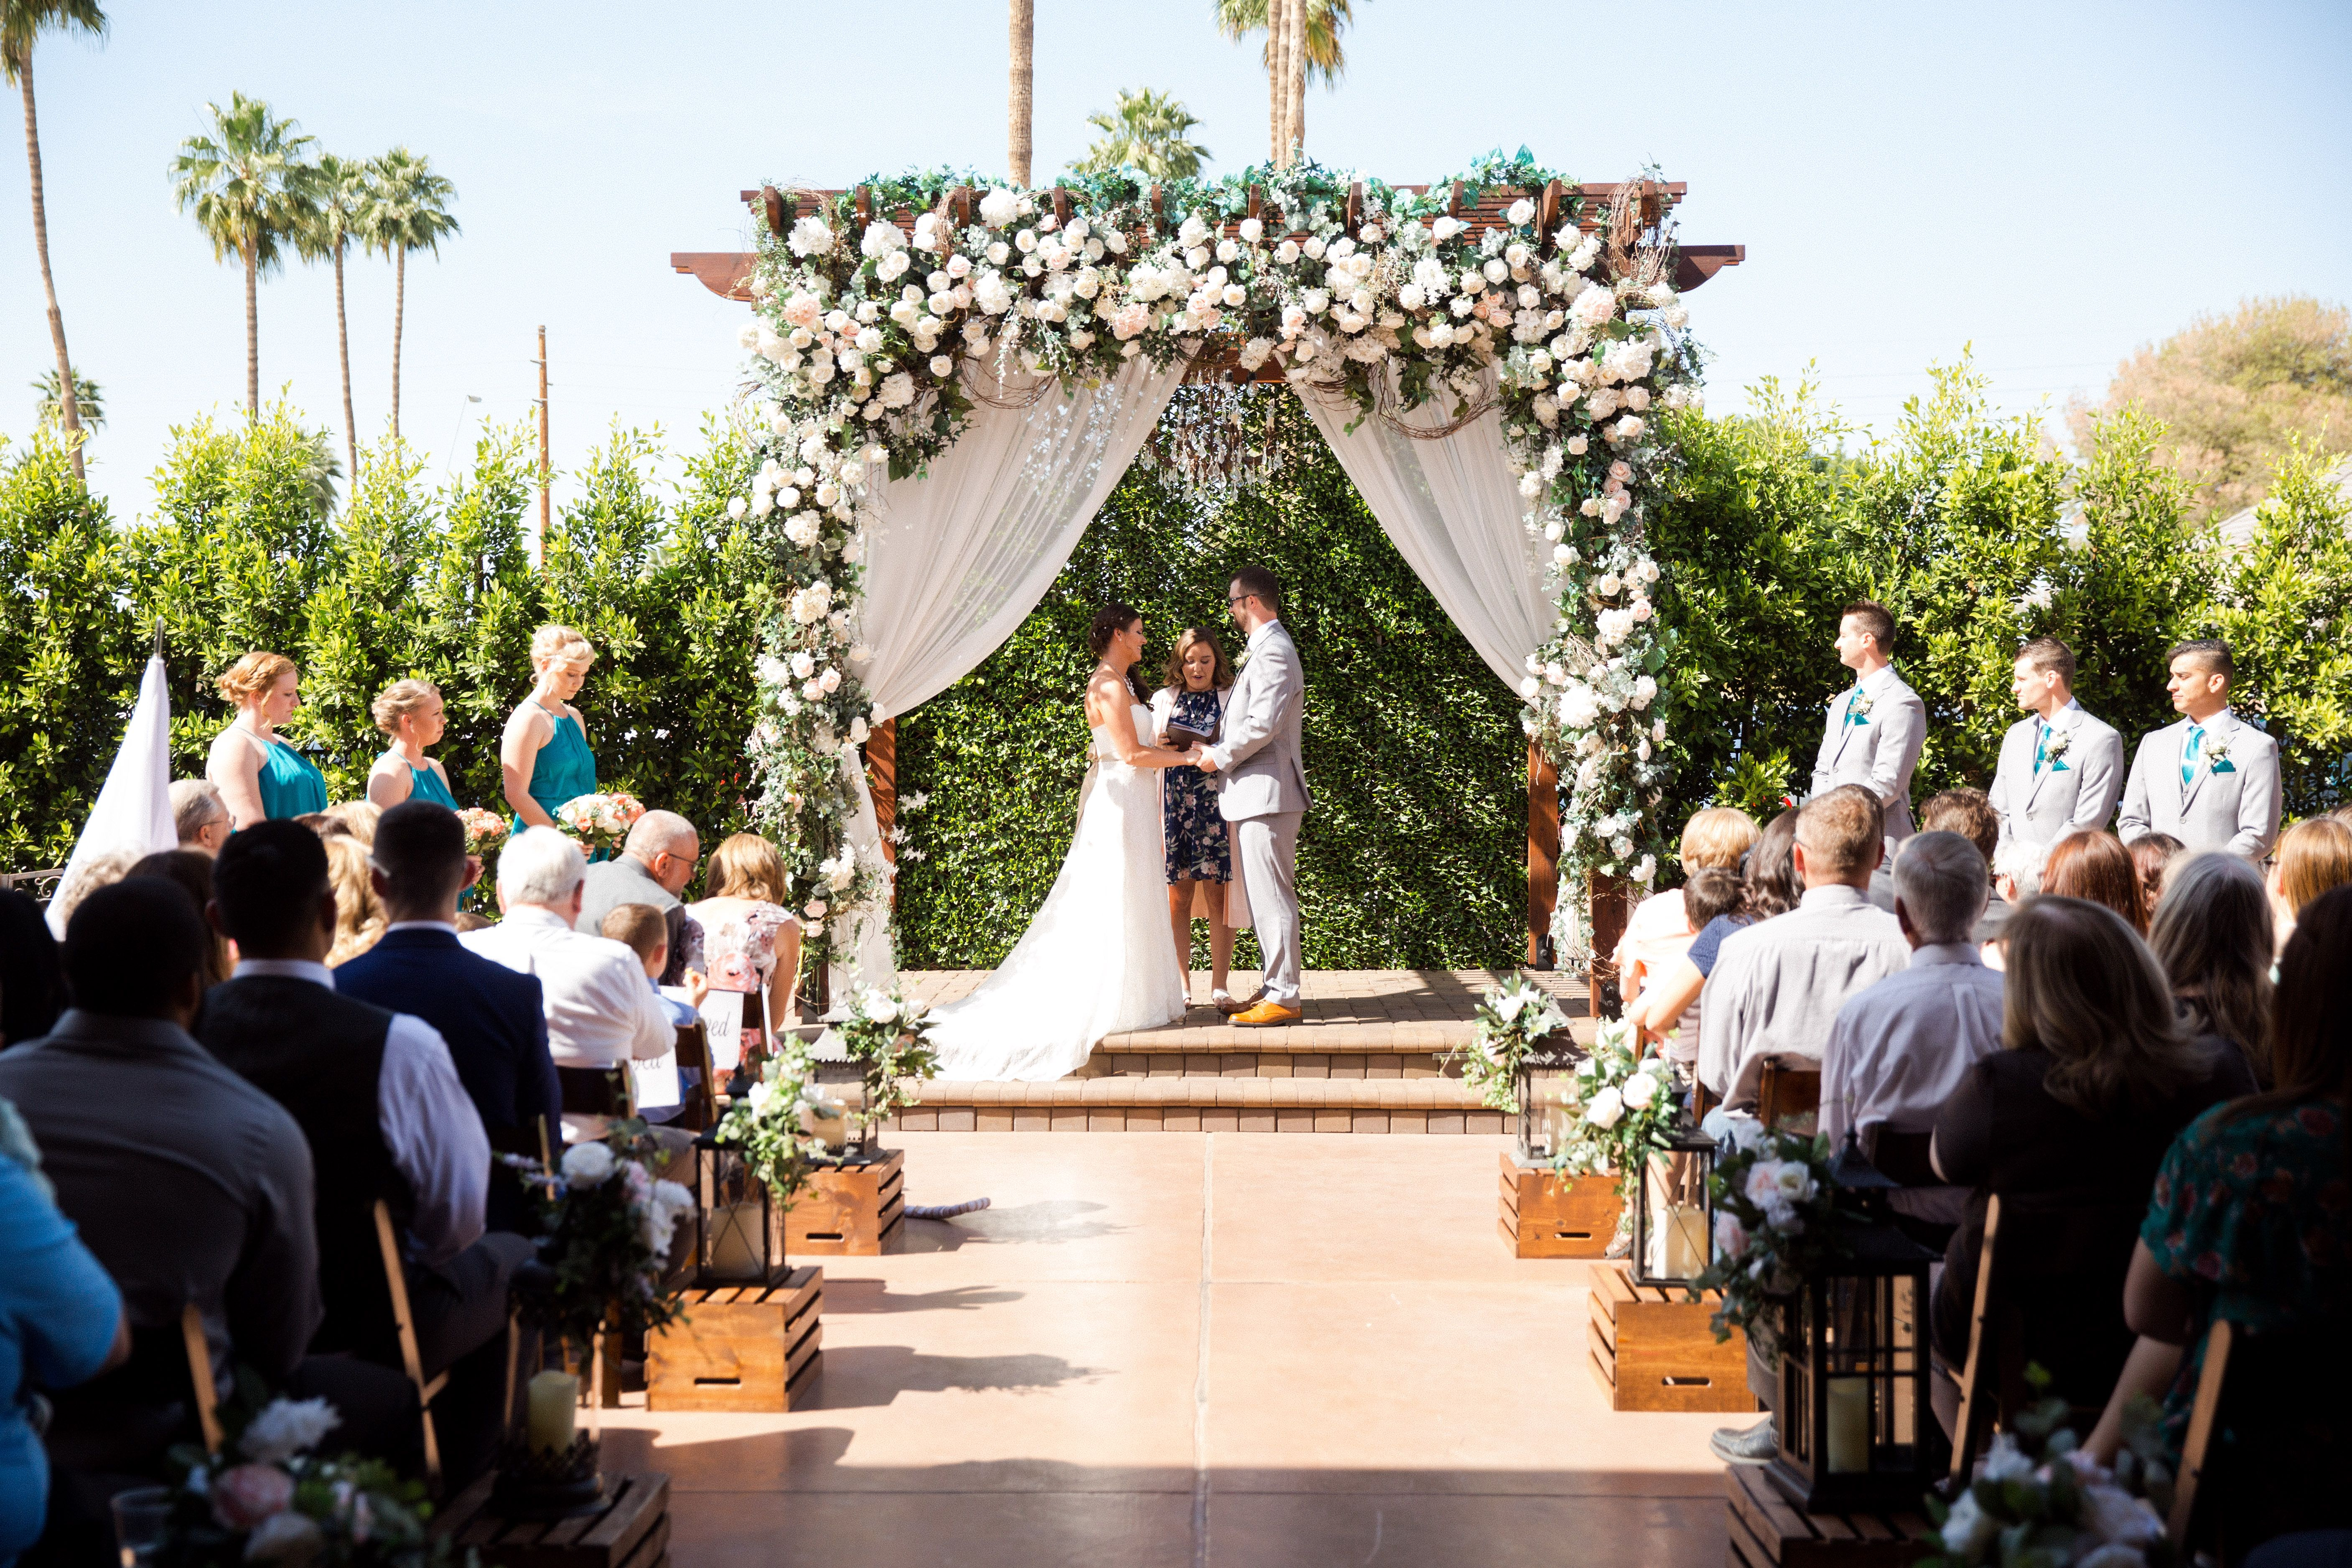 Country Courtyard Wedding Ceremony Decorated With Crates And Lanterns Lining